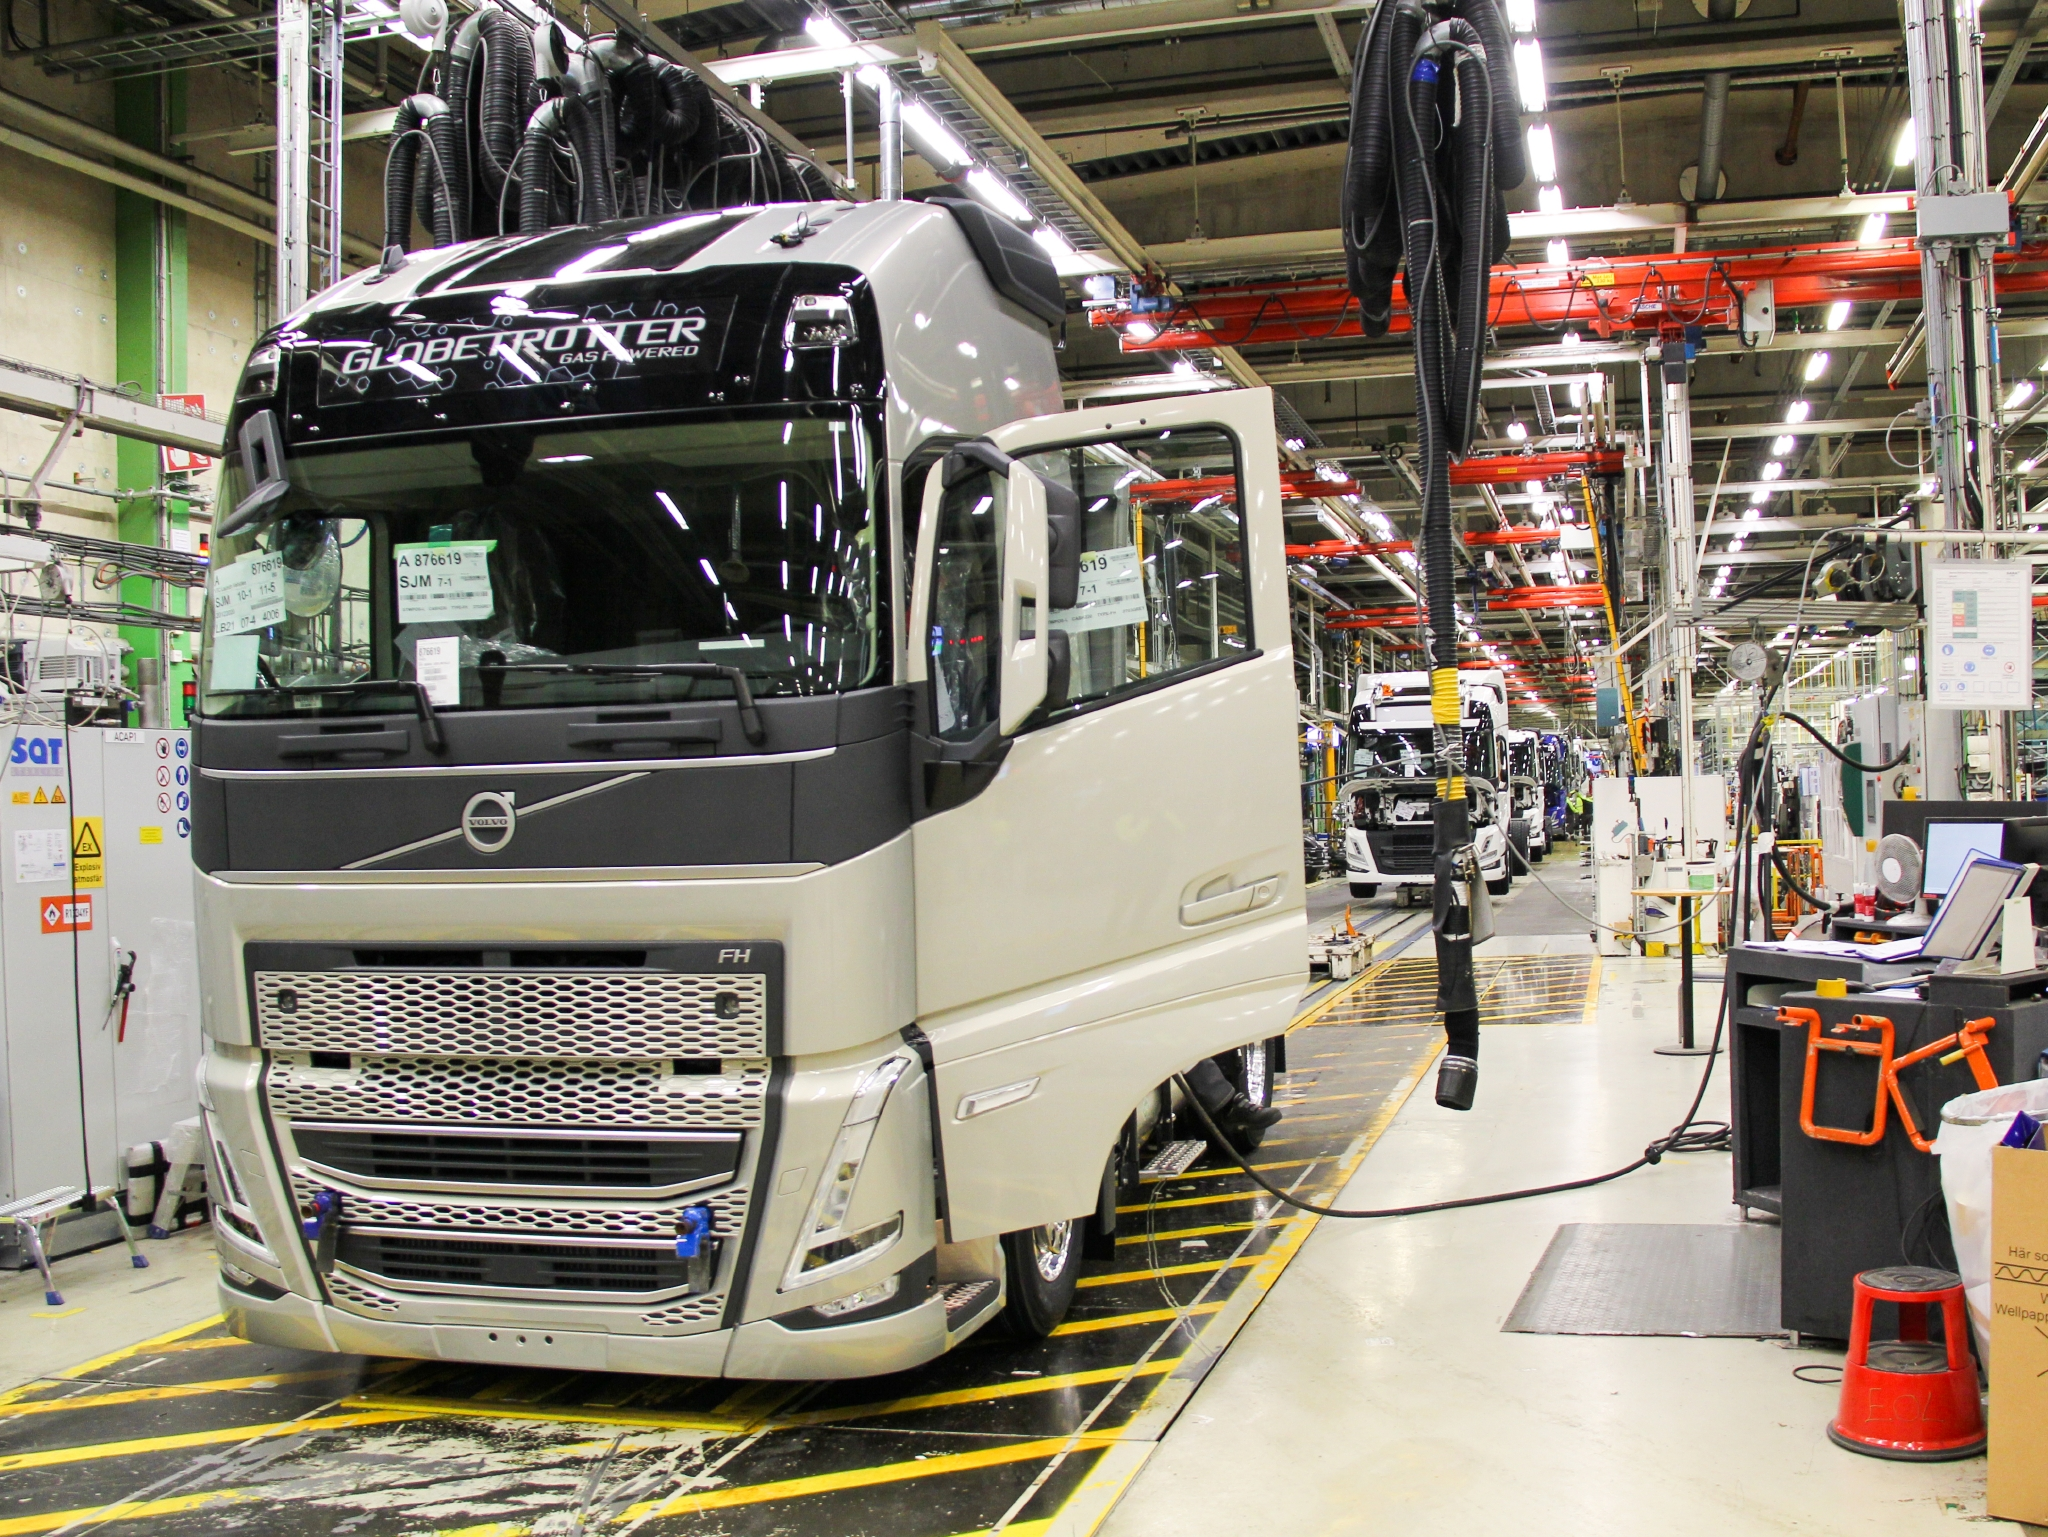 Volvo Trucks new generation of heavy-duty truck models have entered serial production at the CO2 neutral Tuve plant in Gothenburg, Sweden.